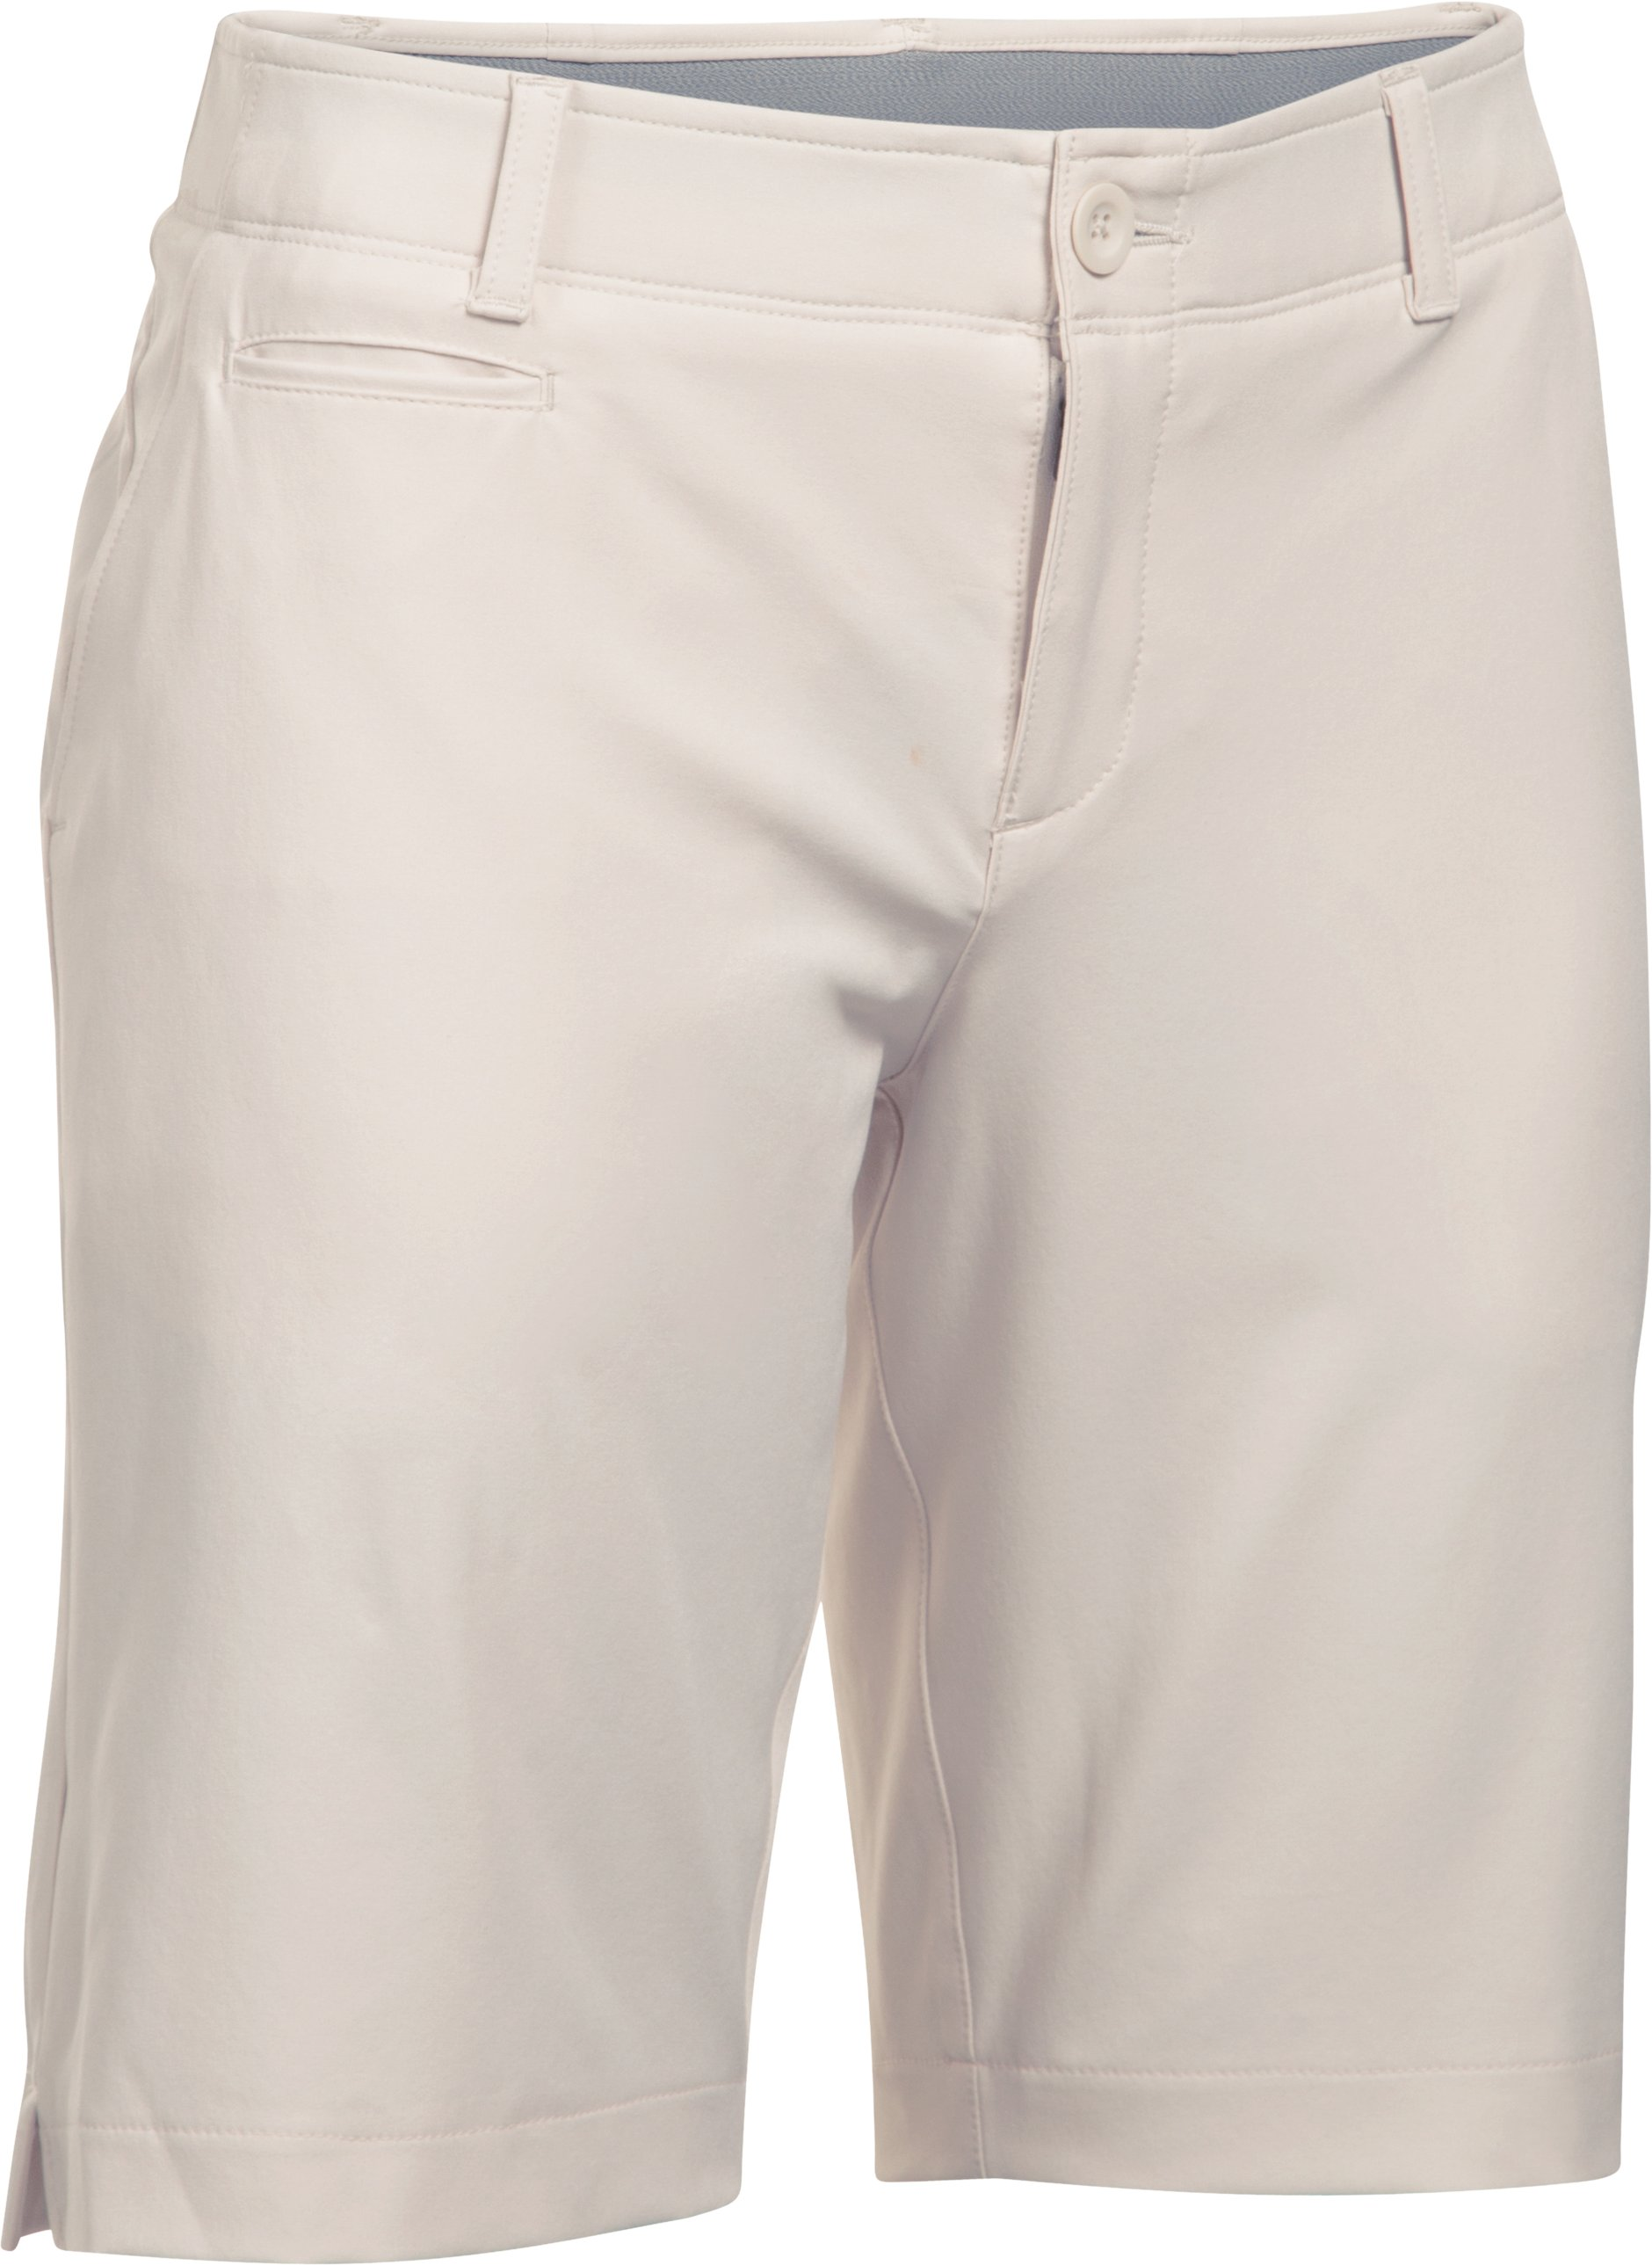 "Women's UA Links 9"" Shorts, Vanilla"